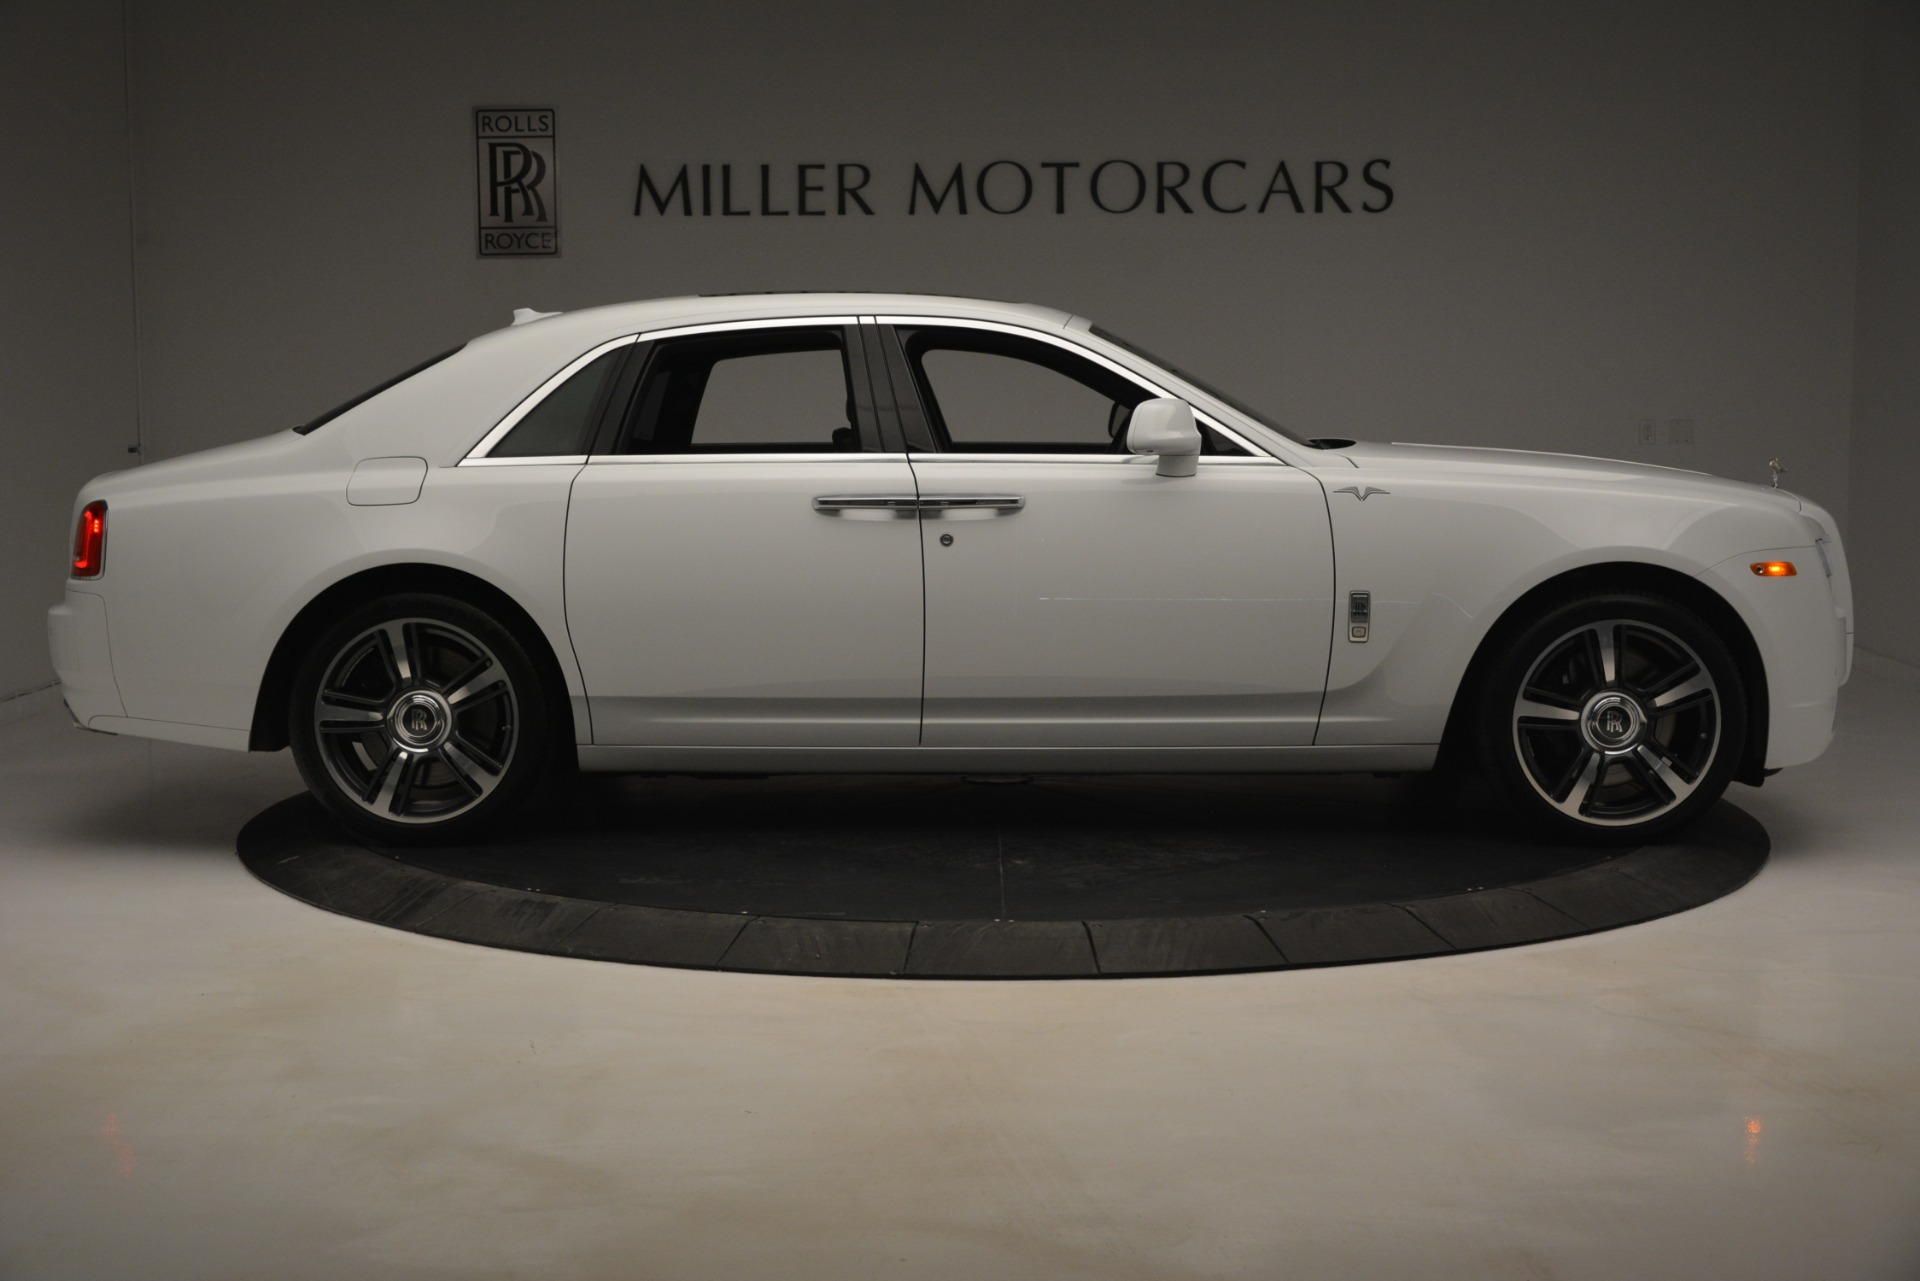 Used 2014 Rolls-Royce Ghost V-Spec For Sale In Westport, CT 2989_p11